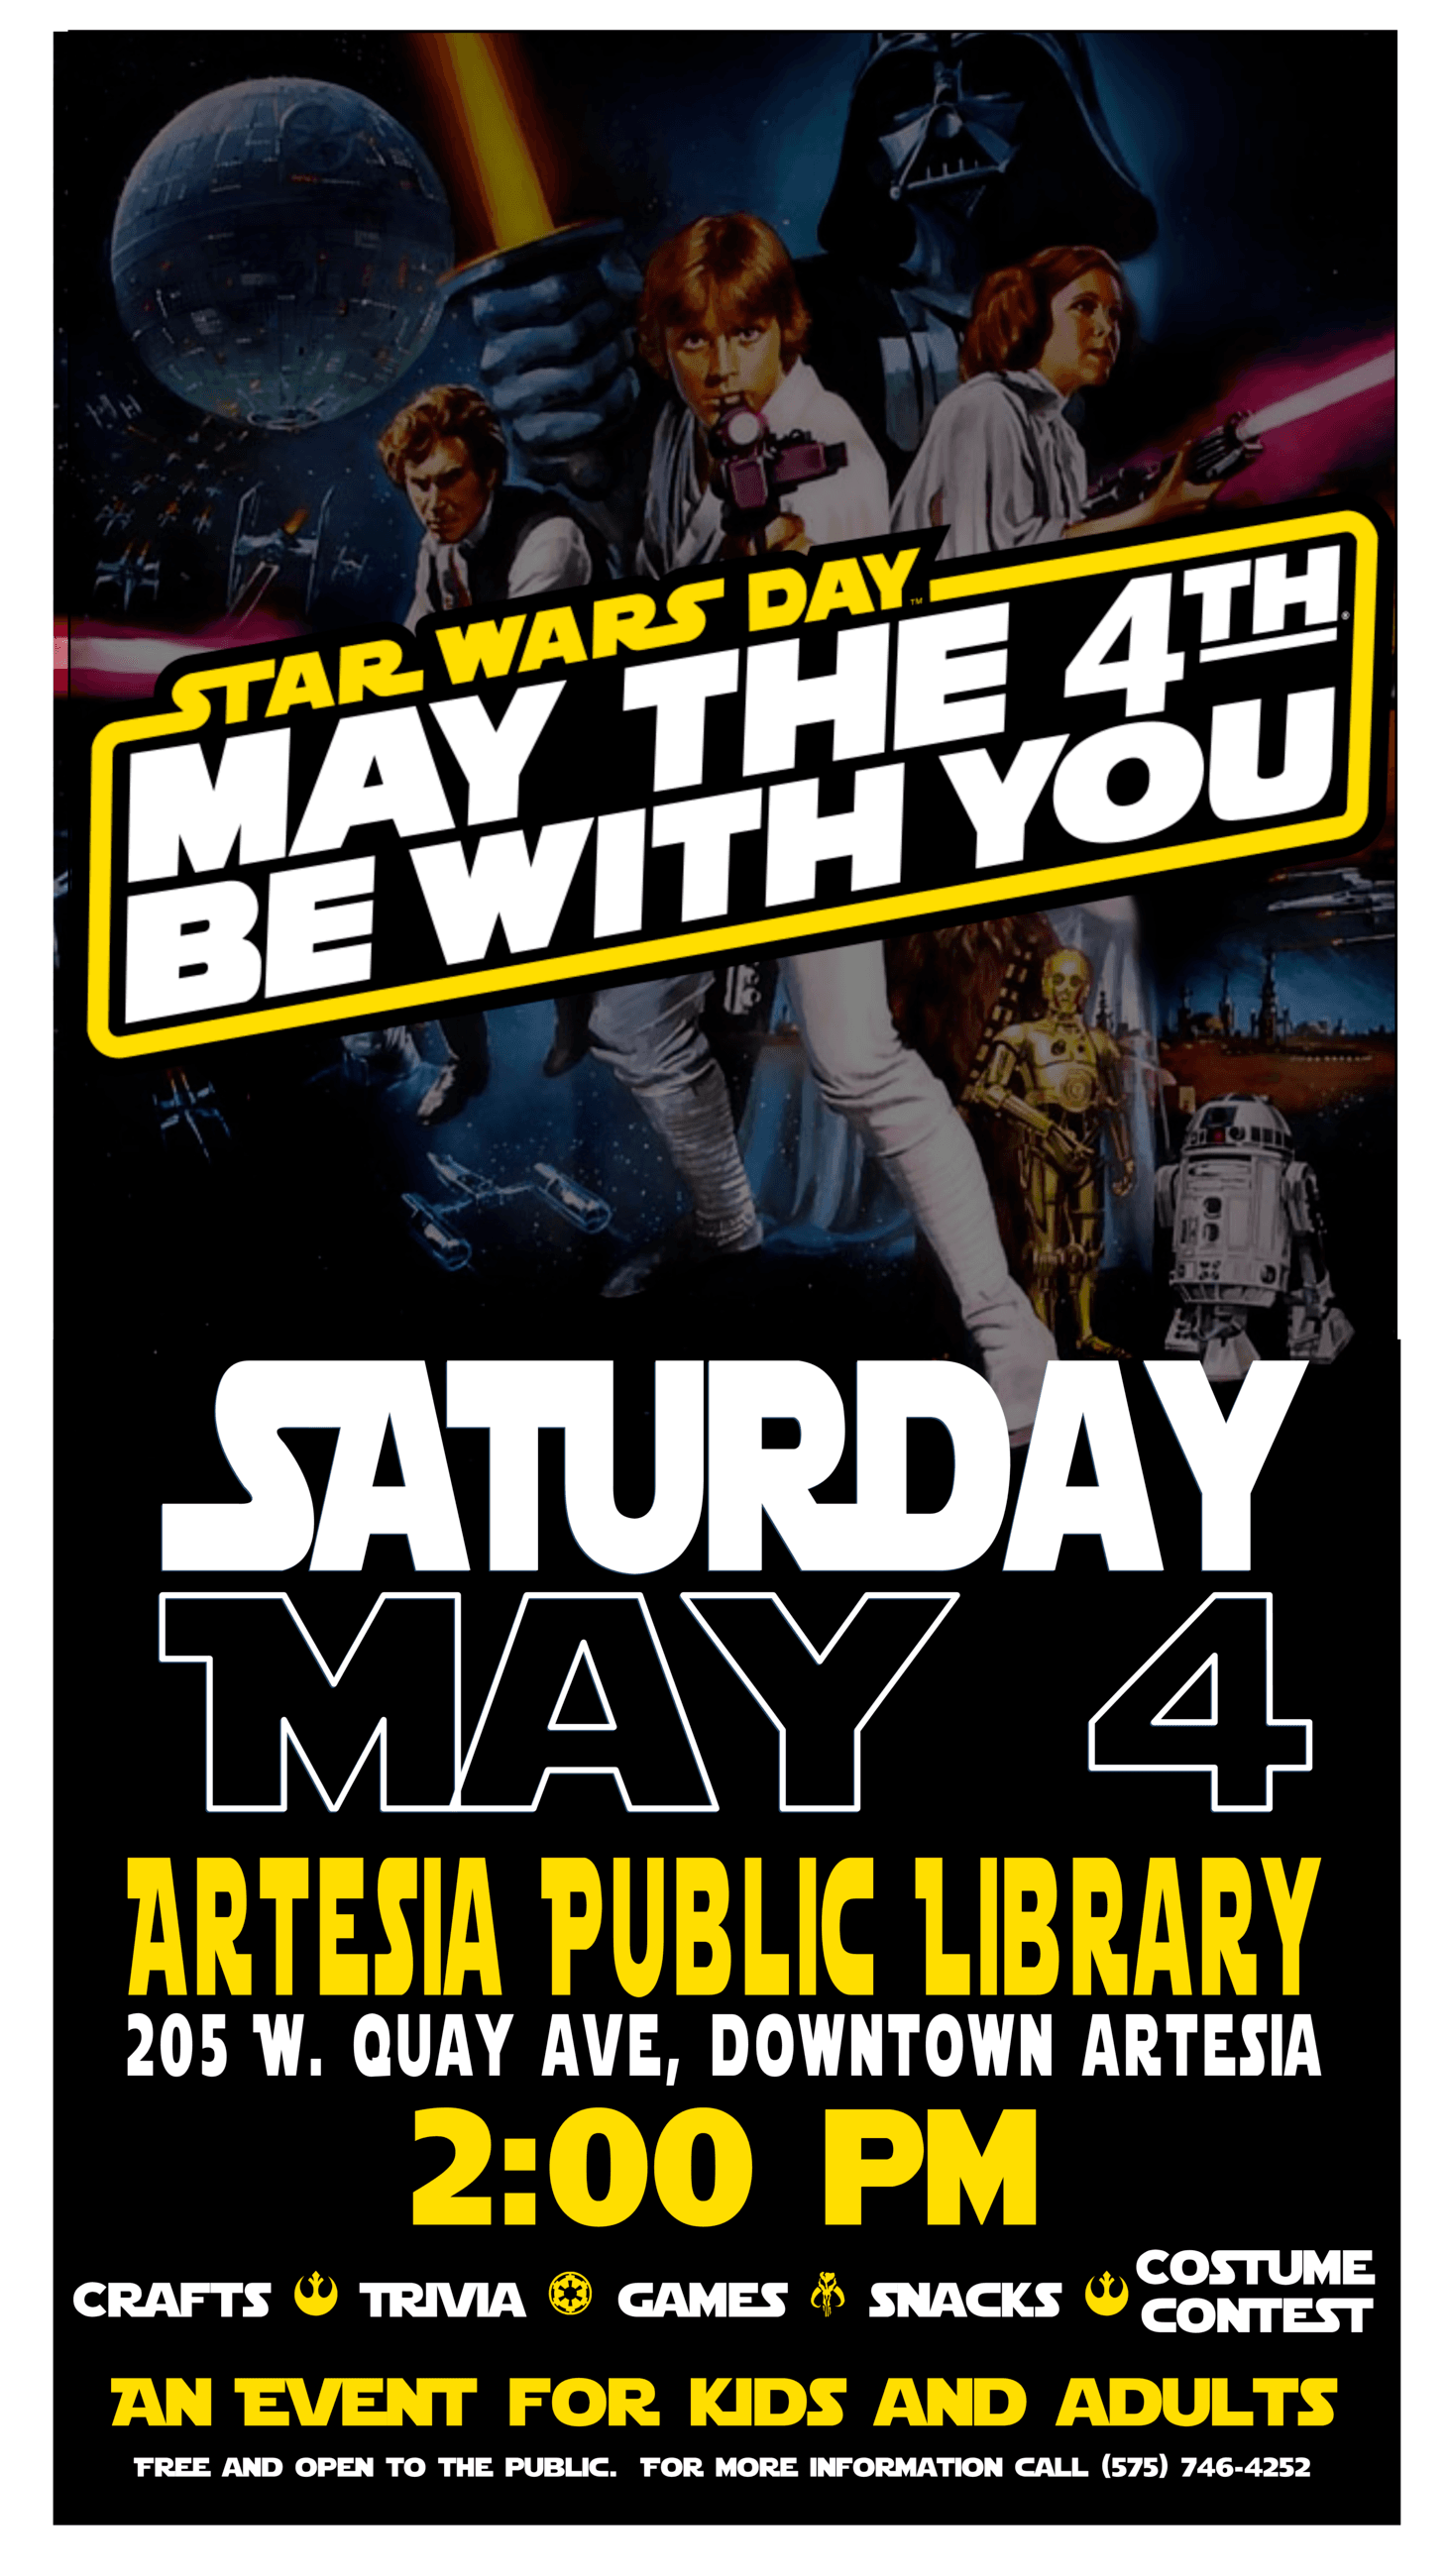 Star Wars Day 2019 tabloid